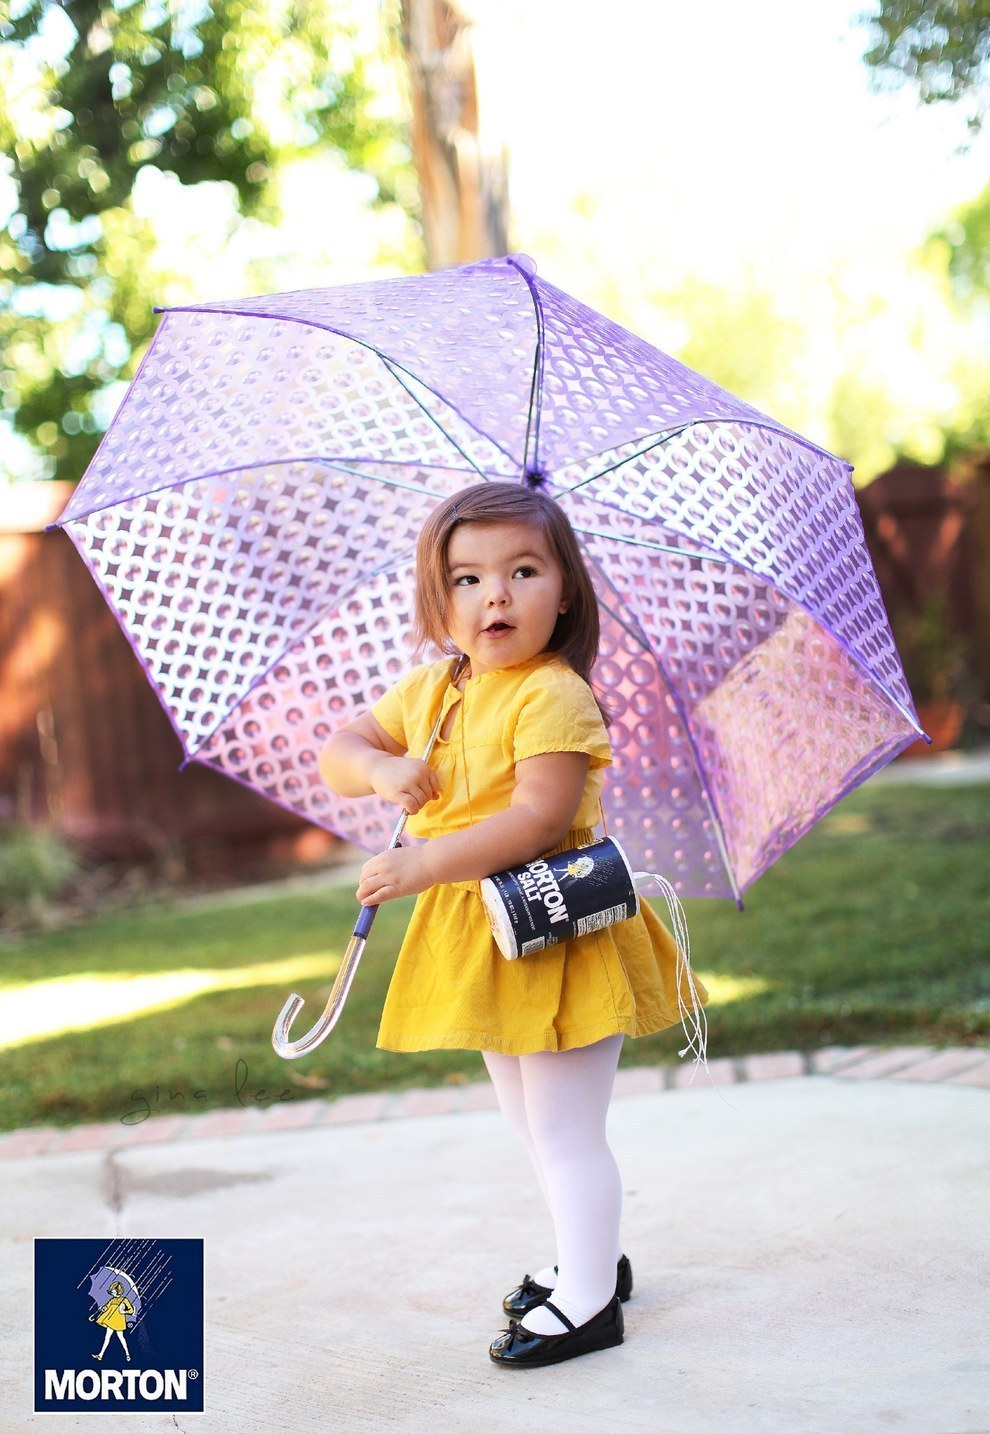 As incredible as those costumes were, Willow somehow topped them last year. She became the Morton Salt Girl...